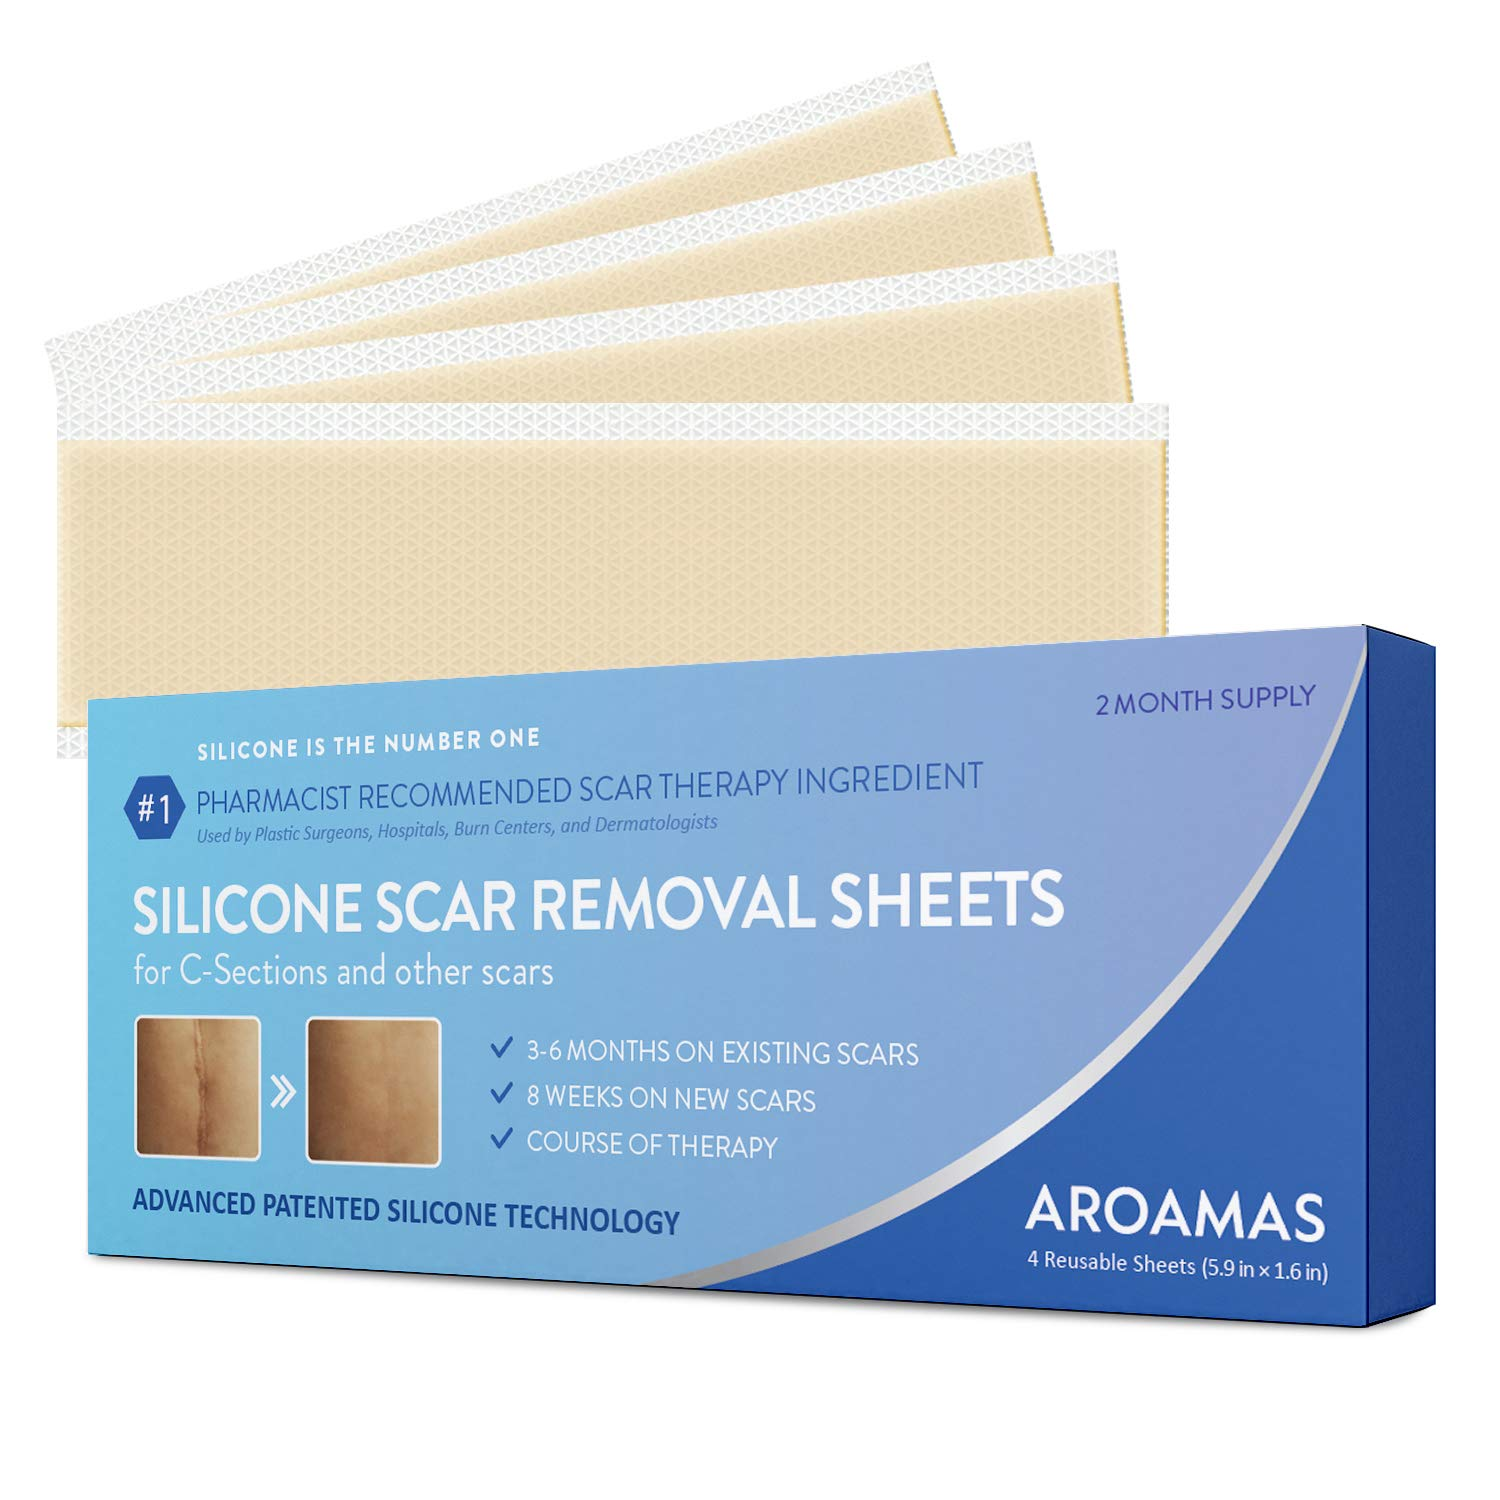 Aroamas Professional Silicone C-Section Scar Removal Sheets, Soft Adhesive Fabric Strips, Drug-Free, Relieves Itching, Remove Keloid Scars, Acne. 5.9'' ✕ 1.6'', 4 pcs (2 Month Supply), Beige